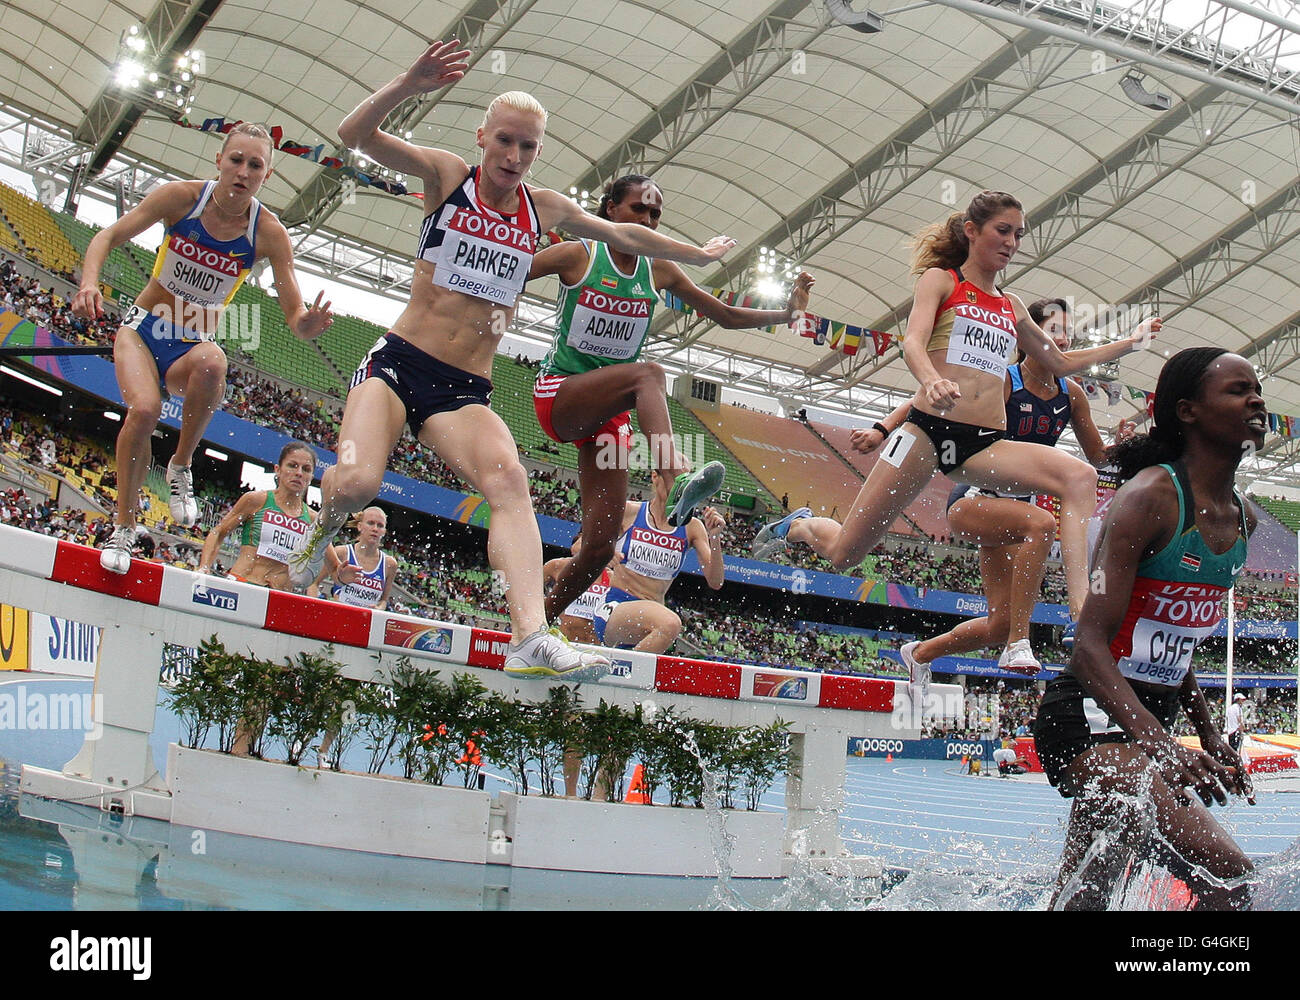 Athletics - IAAF World Championships 2011 - Day One - Daegu - Stock Image